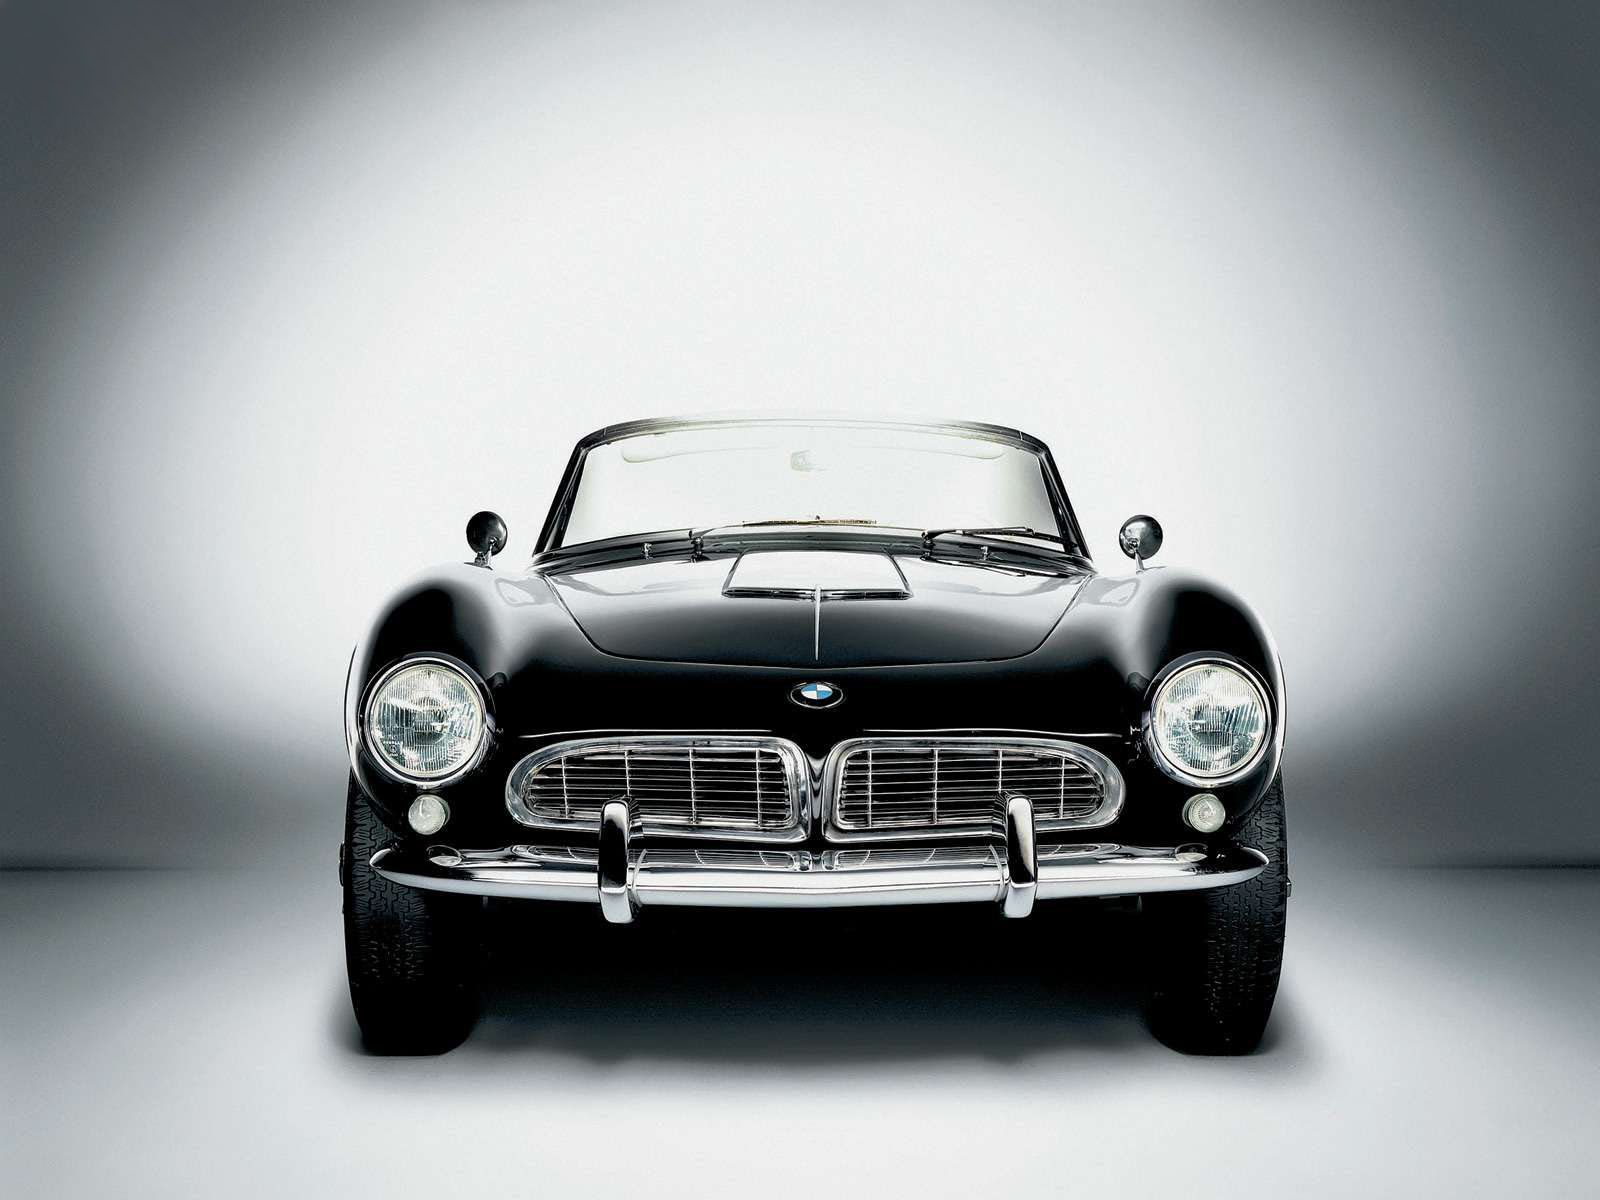 vintage bmw | cars | pinterest | bmw, cars and dream cars